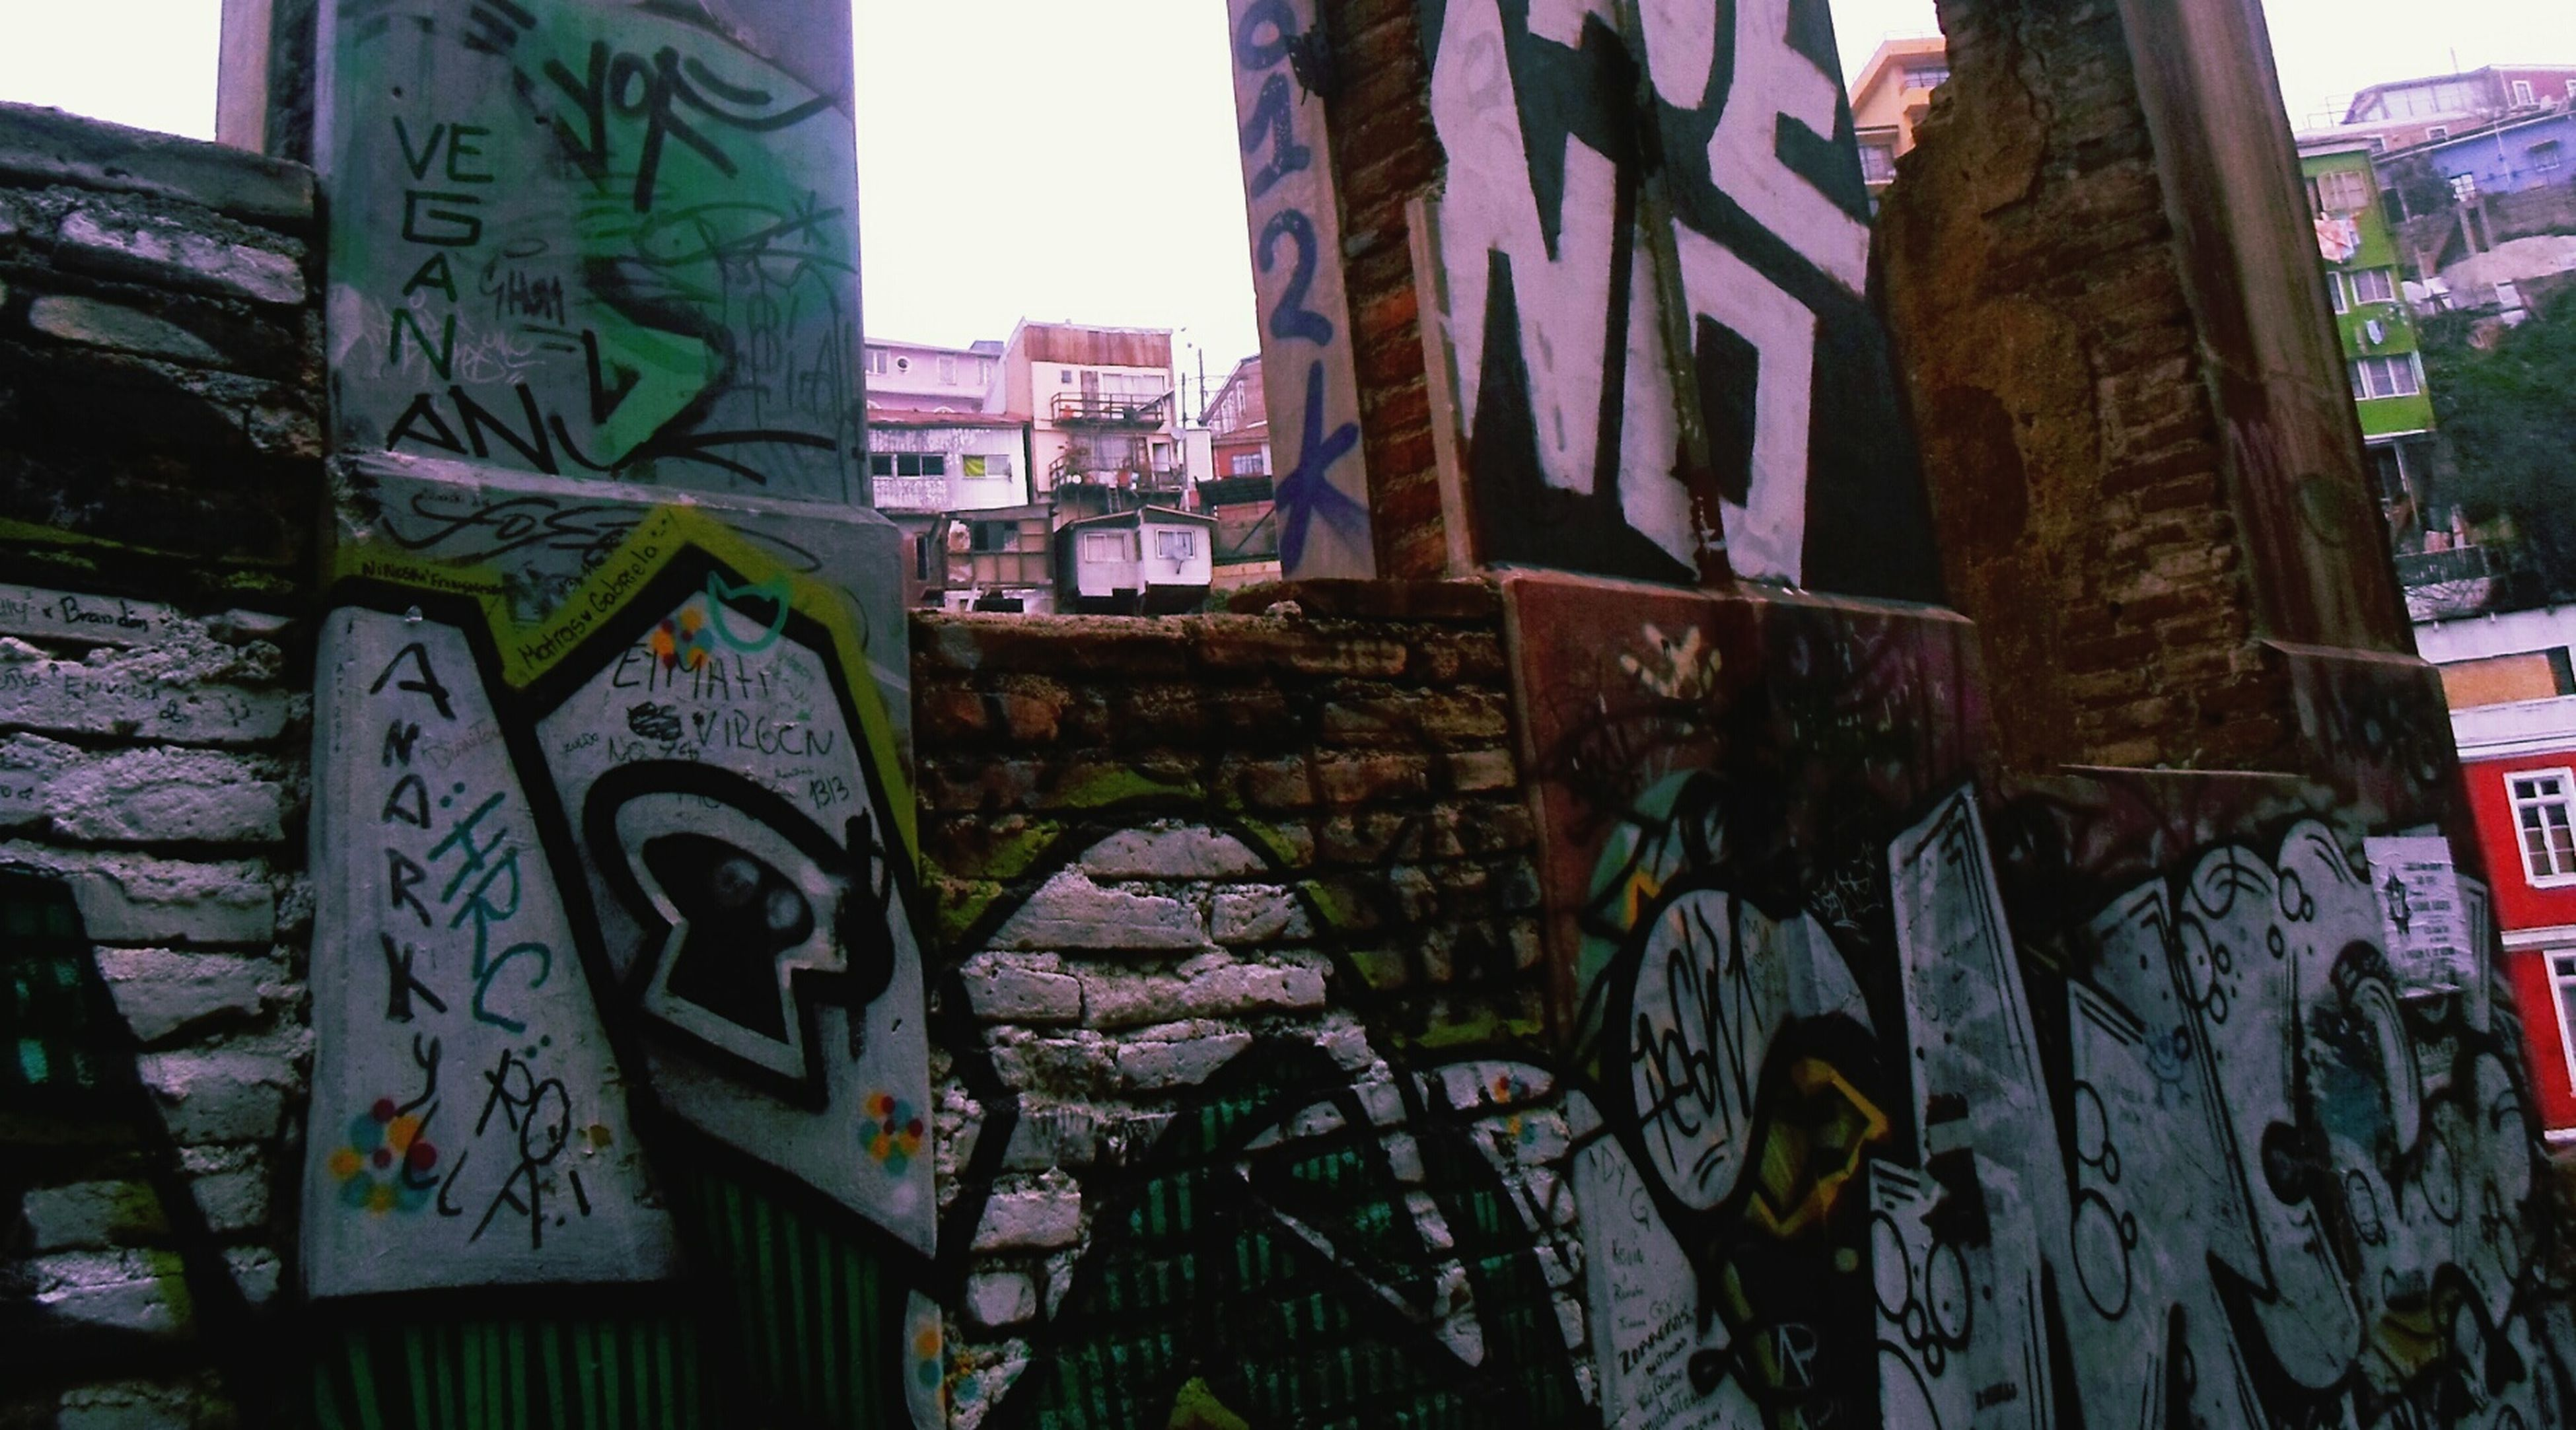 graffiti, architecture, built structure, art, creativity, building, street art, day, no people, outdoors, multi colored, city, sky